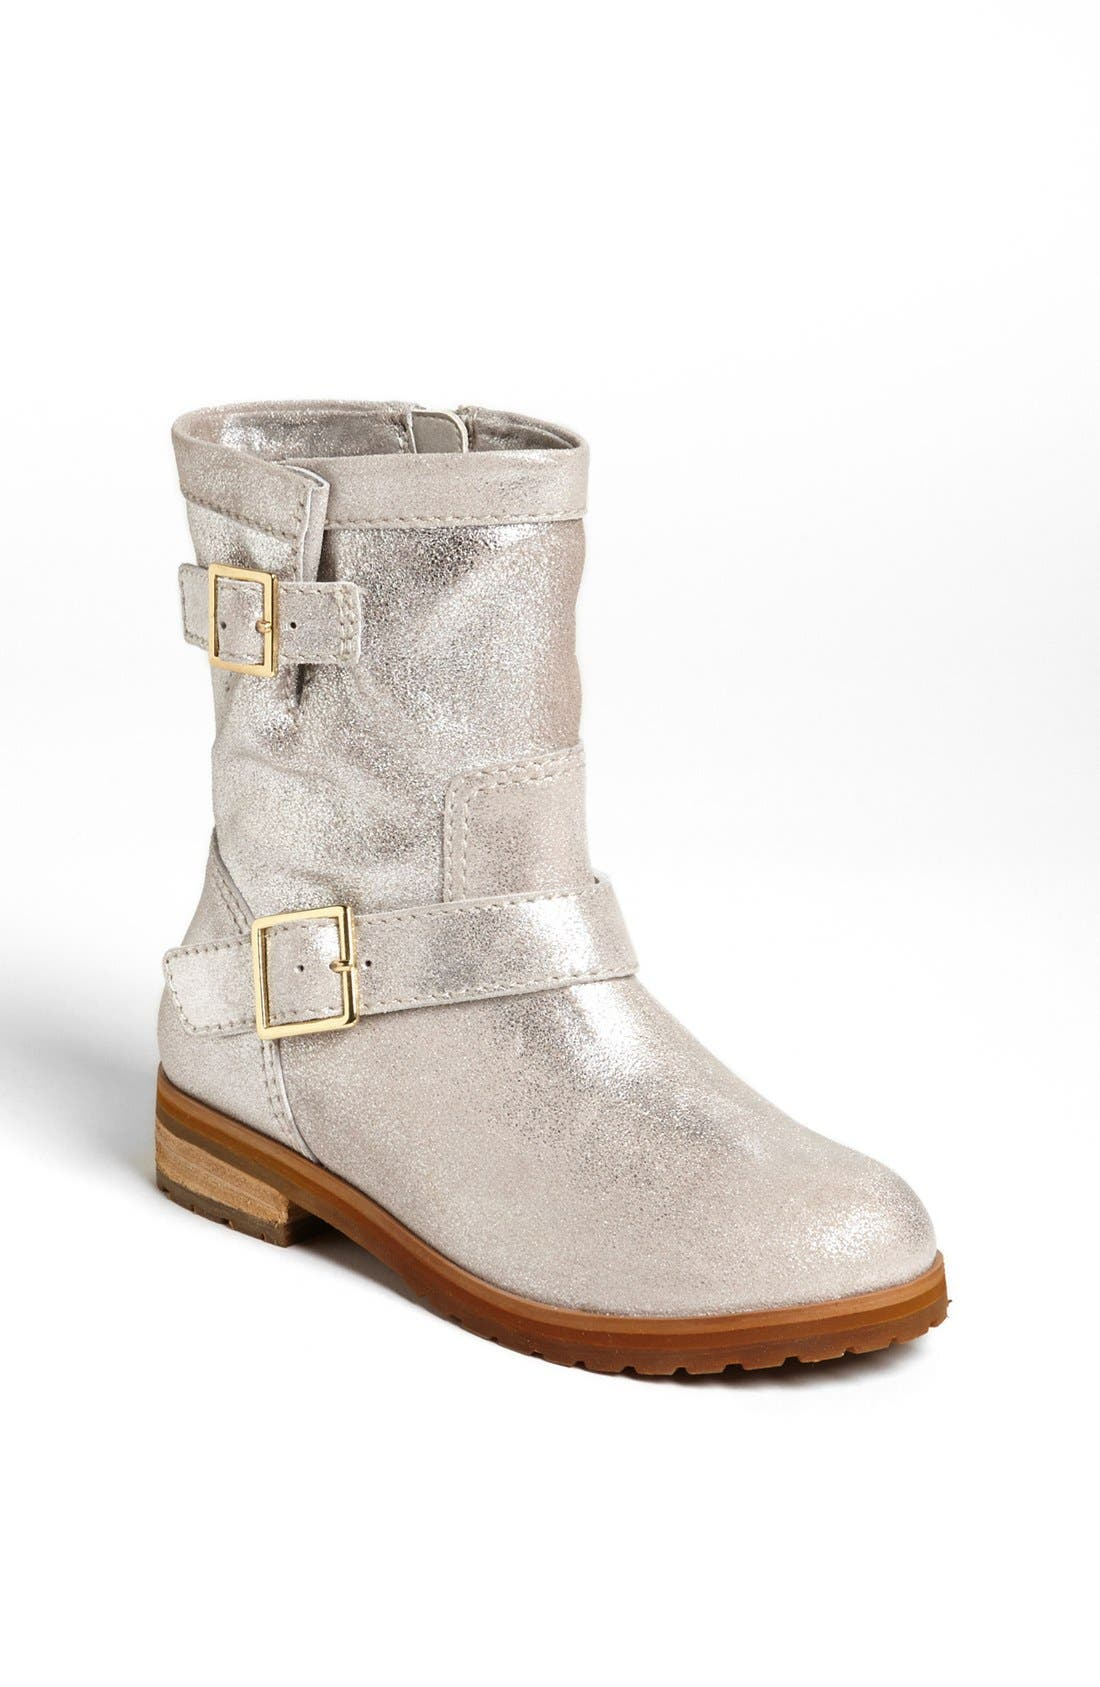 Alternate Image 1 Selected - Peek 'Farraria' Moto Boot (Walker, Toddler, Little Kid & Big Kid)